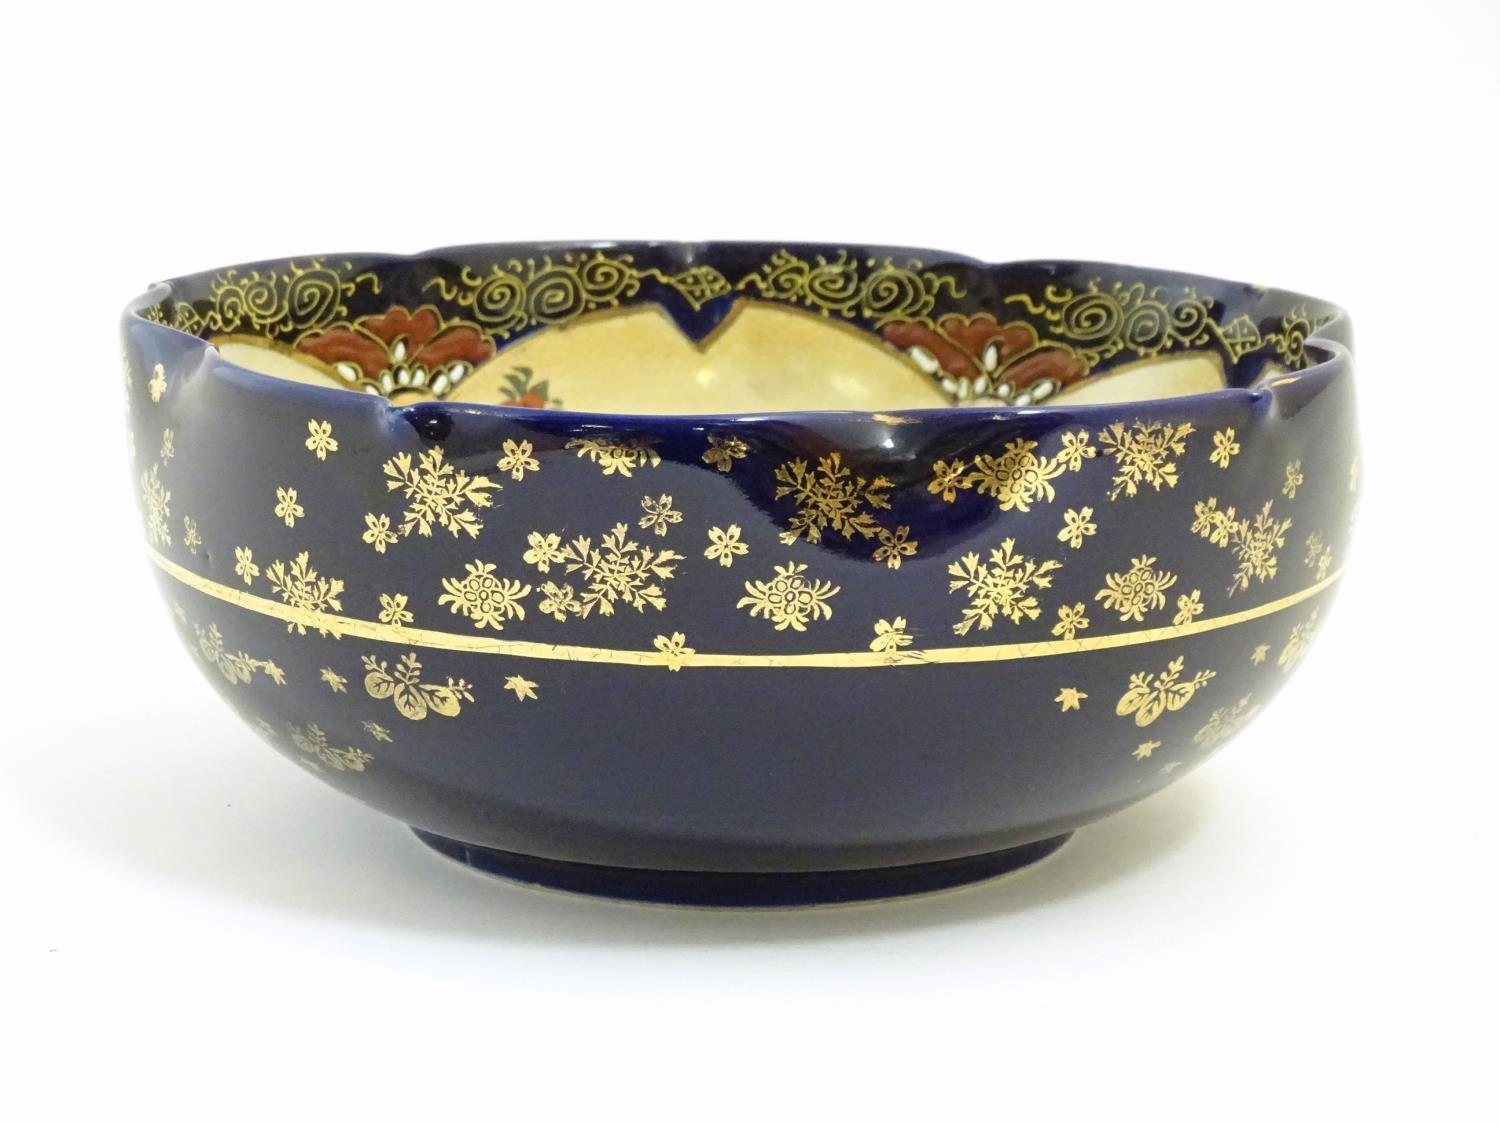 A Japanese export bowl with a lobed rim, decorated with Geisha girls with fans and flowers in a - Image 2 of 7